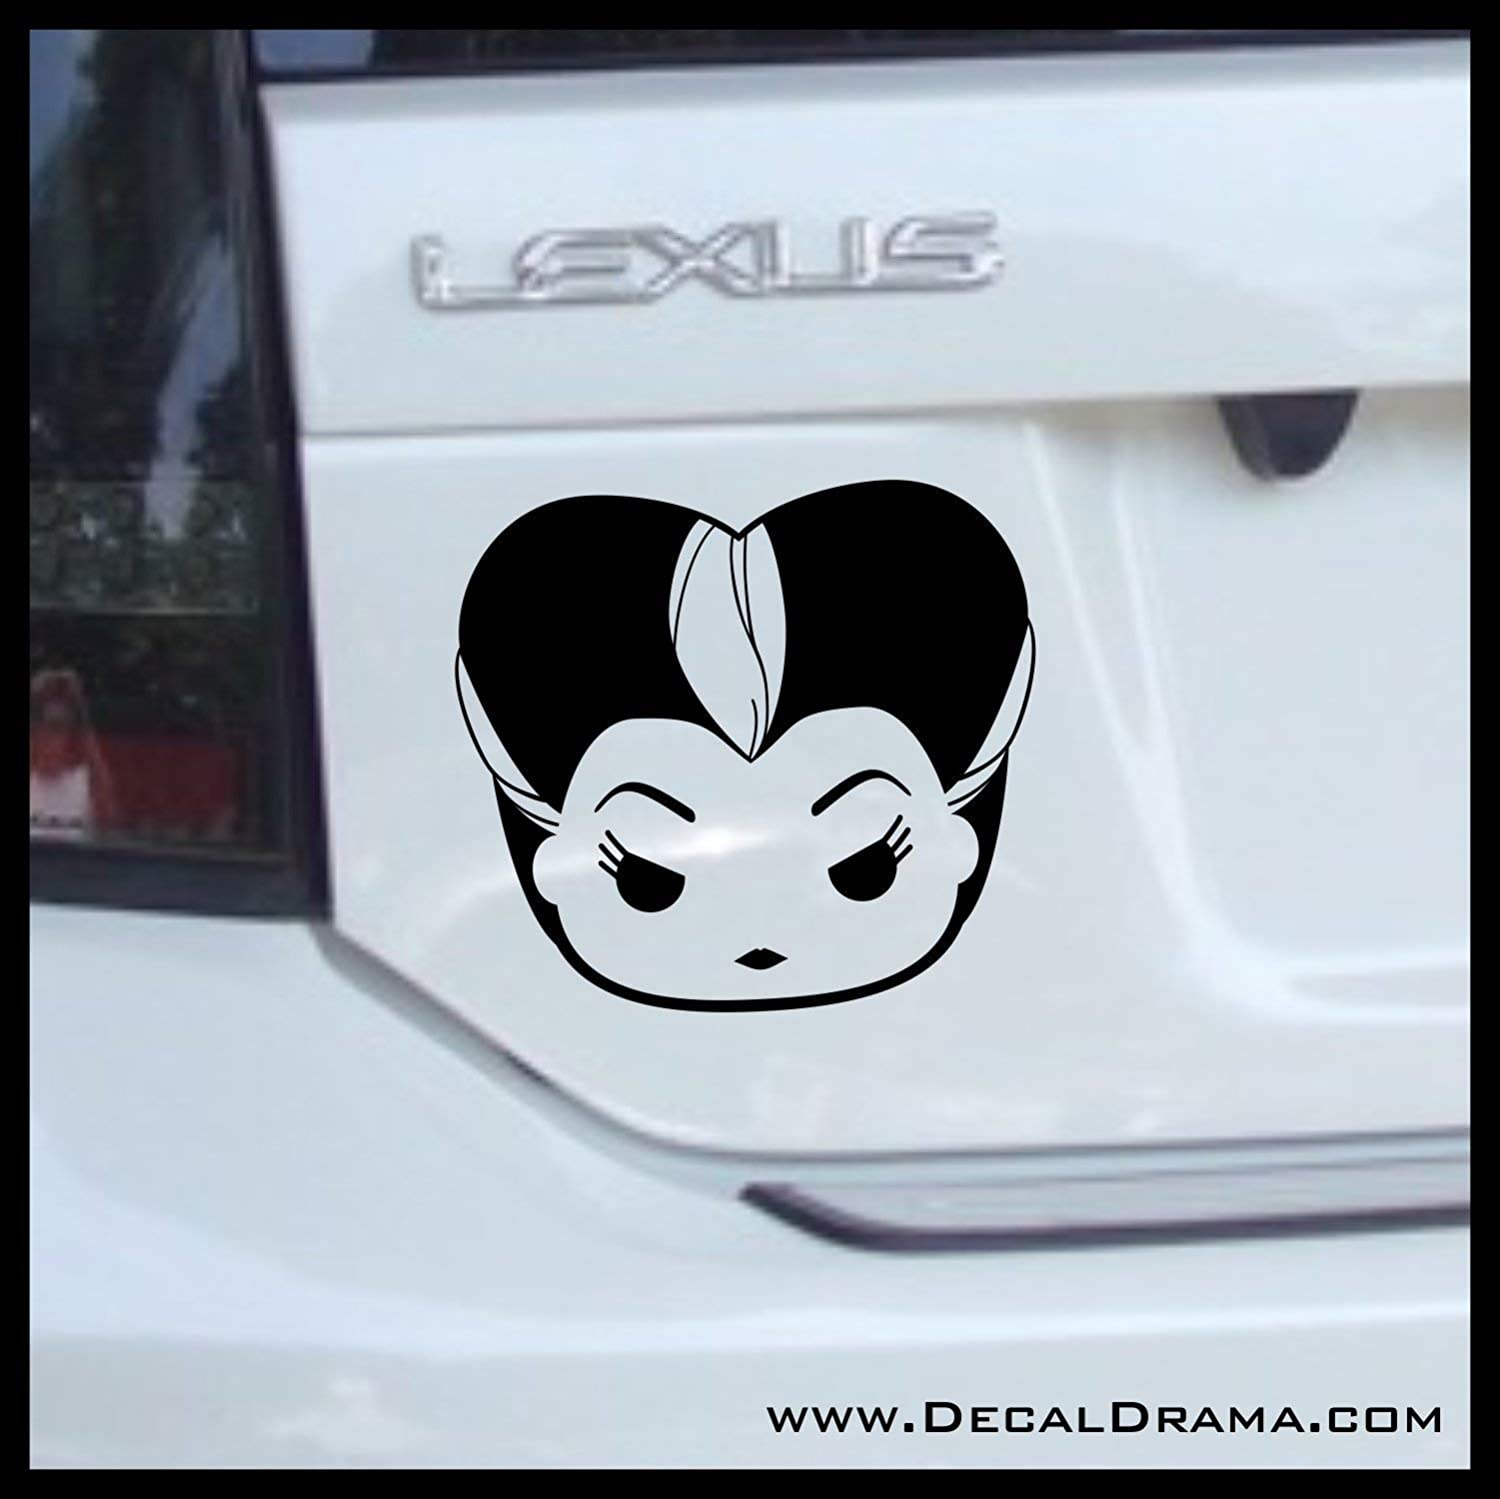 Lady Tremaine Chibi, Cinderella Villain, Vinyl Car/Laptop Decal